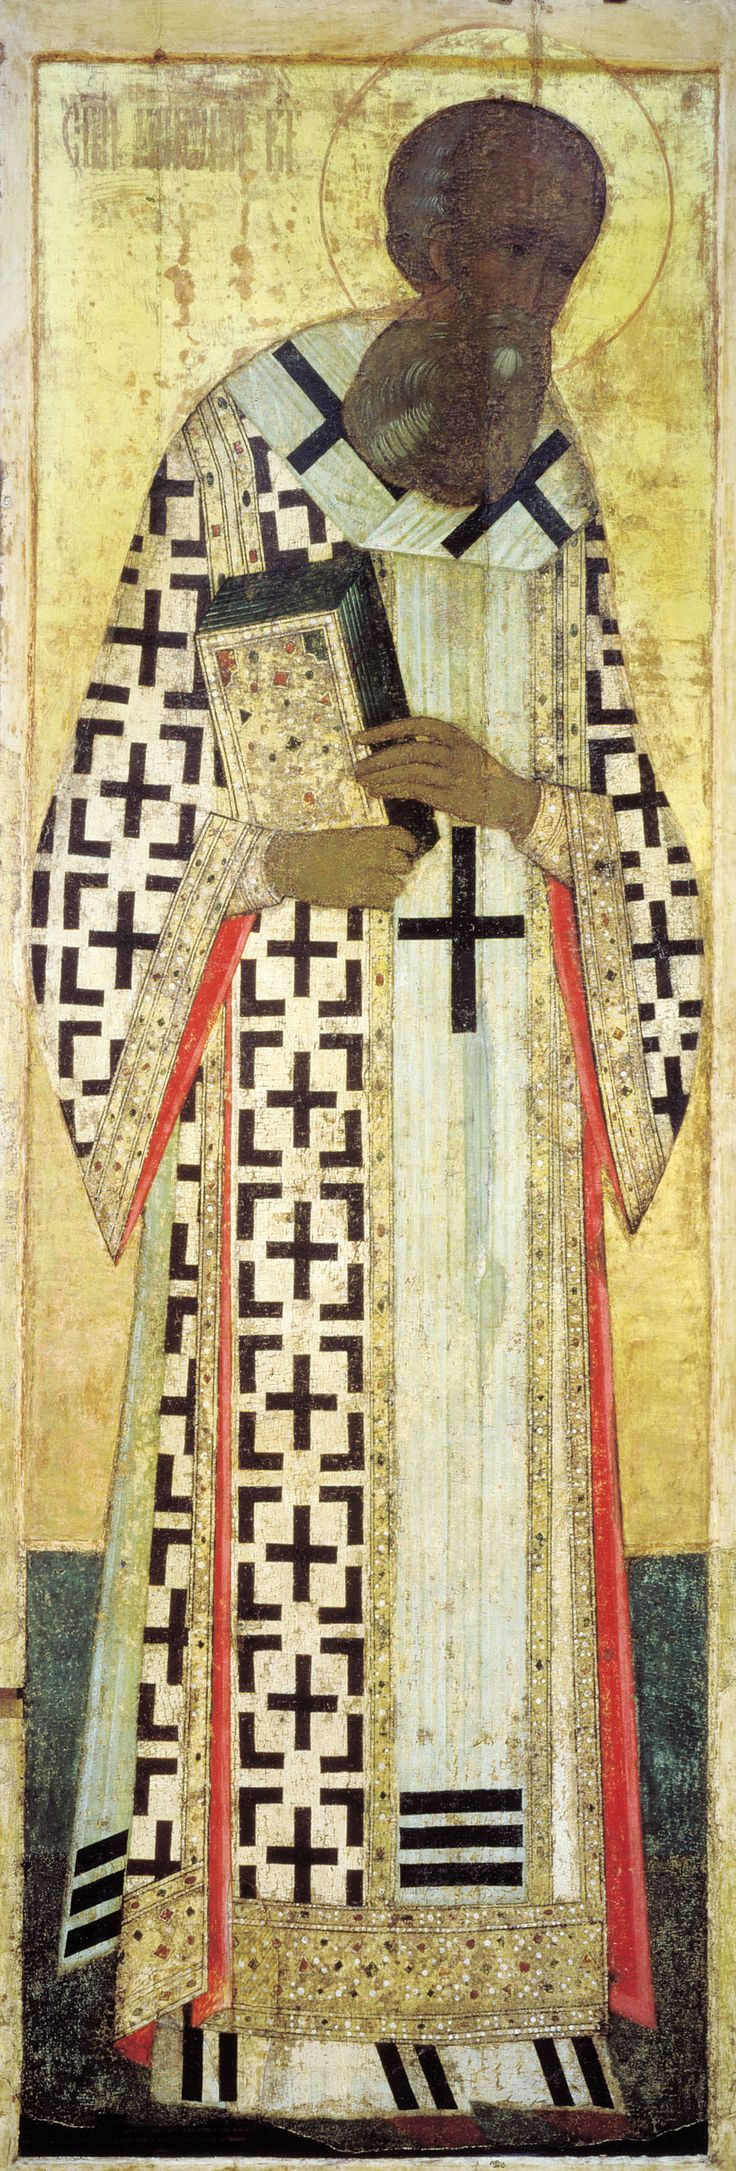 Andrei Rublev - St. Gregory the Theologian, 1408 (Dormition Cathedral, Vladimir)